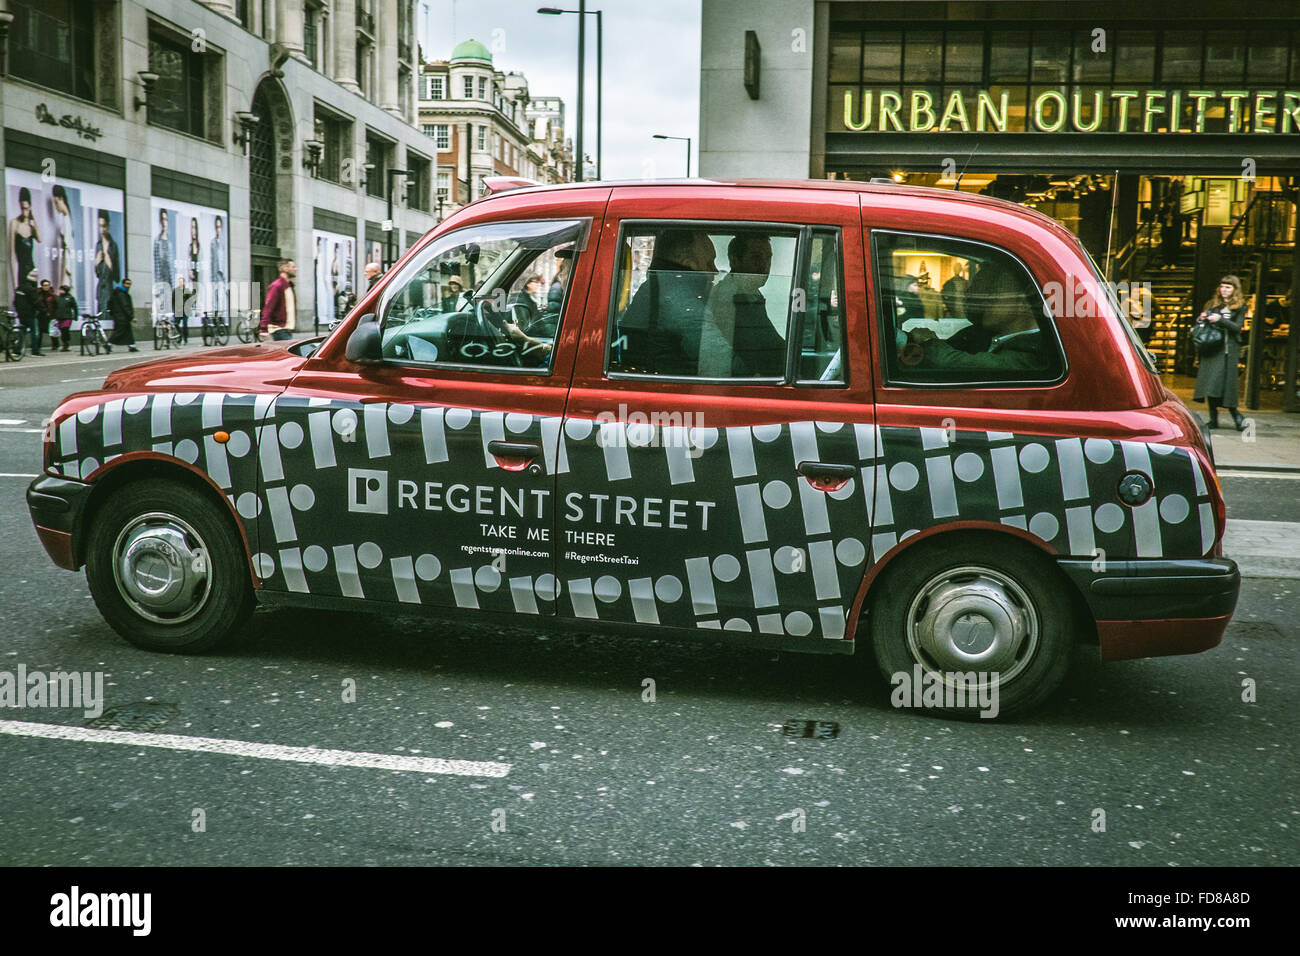 A London Taxi Cab with red and white livery for Regent Street in Oxford Street Stock Photo